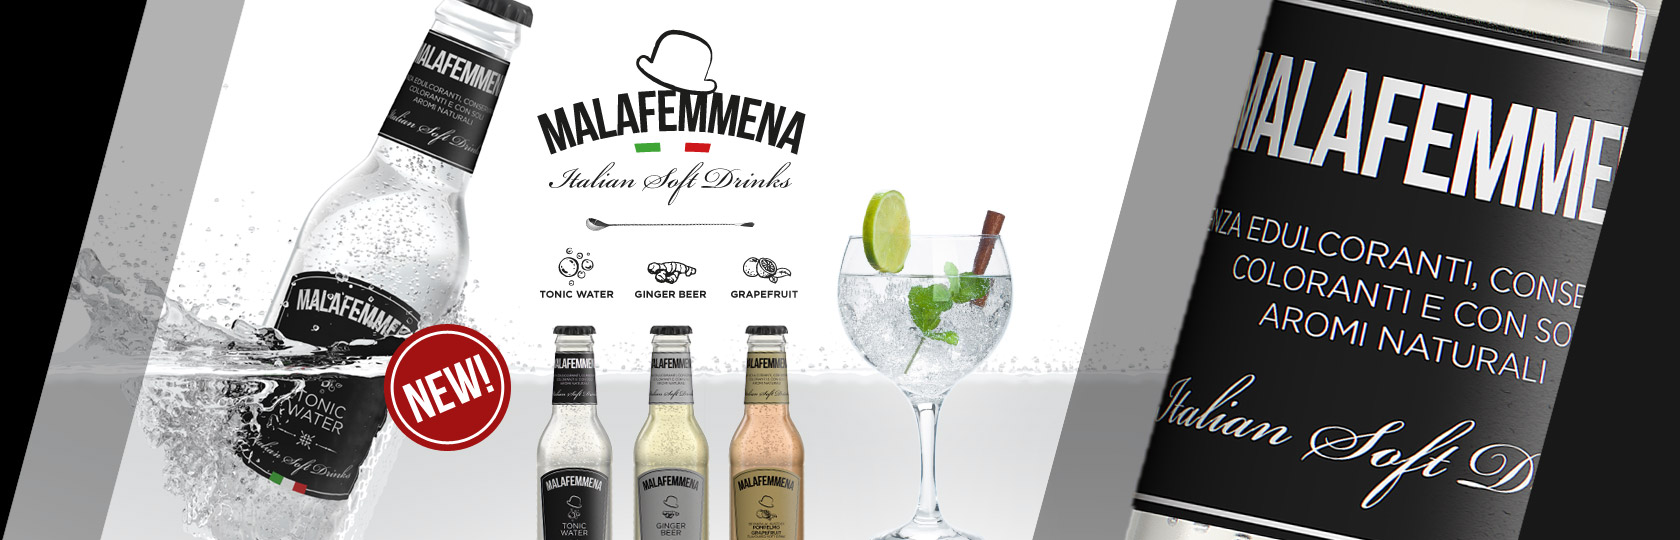 MALAFEMMENA iTALIAN SOFT DRINKS